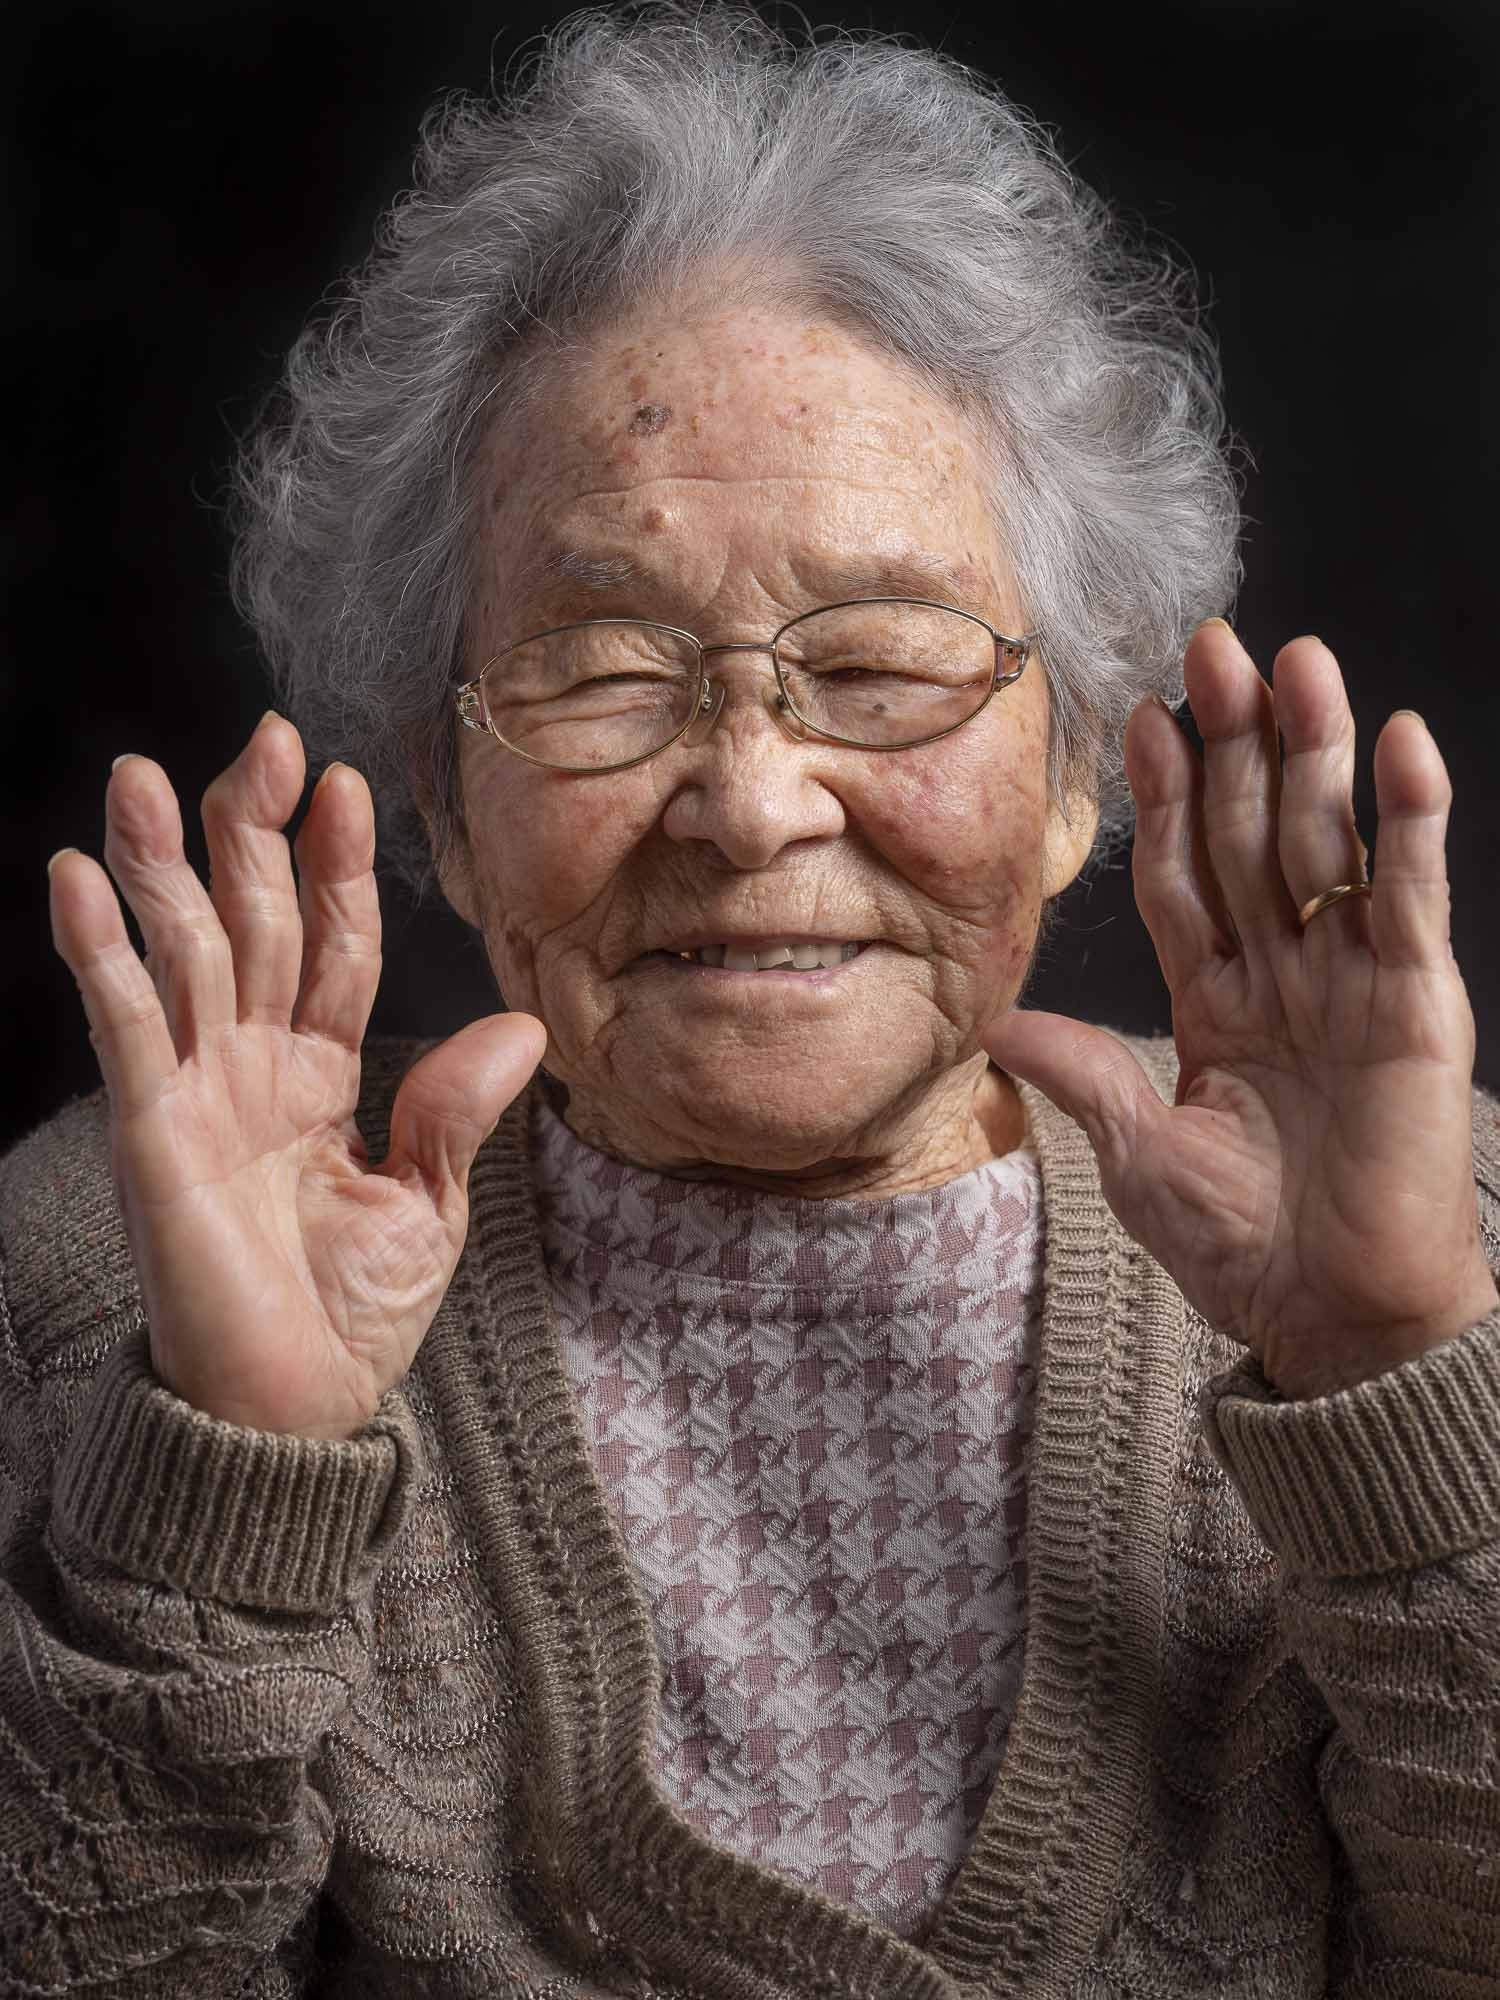 okinawa longevity centenarians people japan portrait photography project